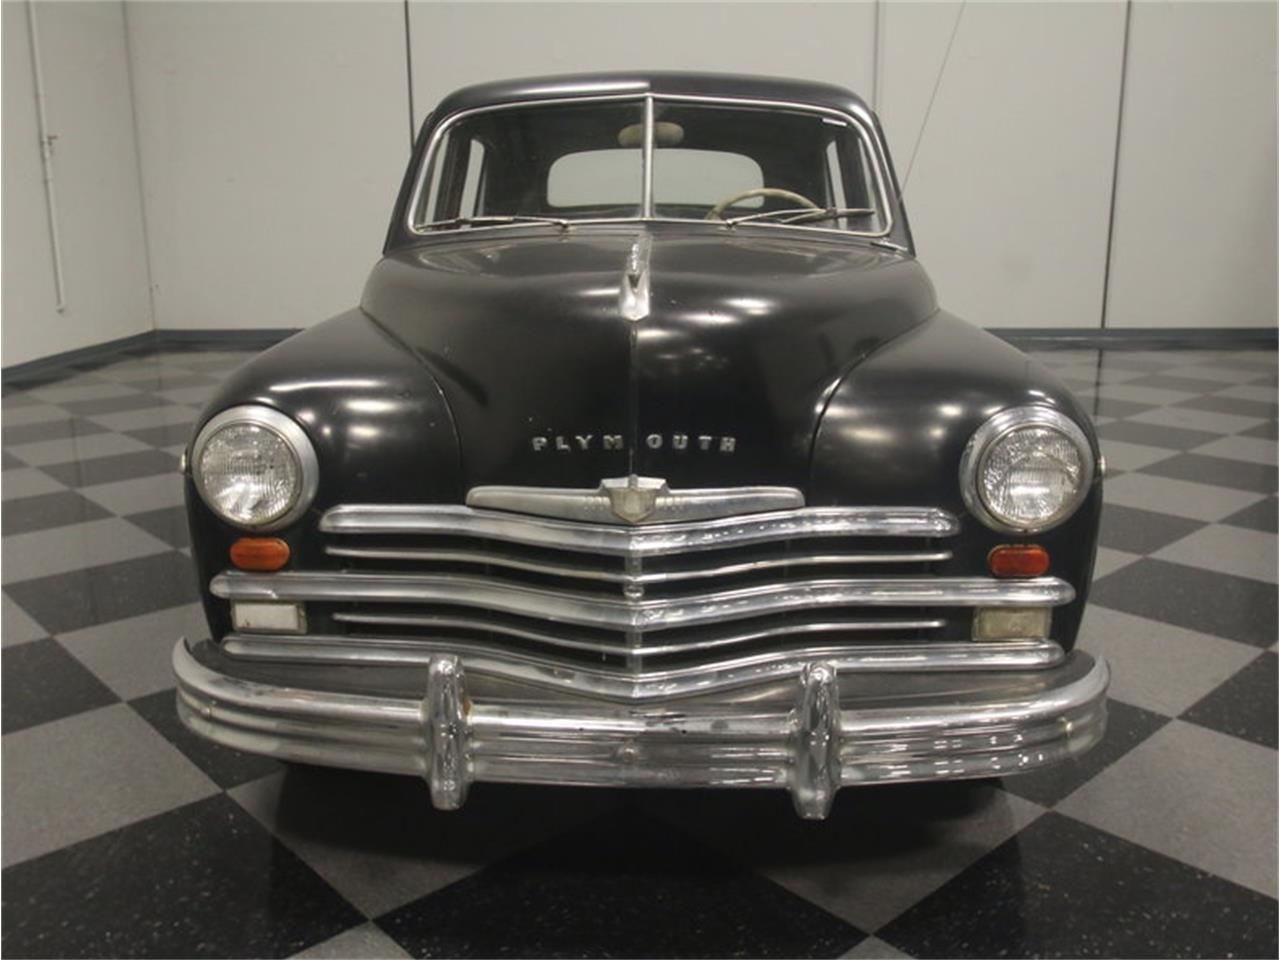 Large Picture of Classic '49 Special Deluxe located in Lithia Springs Georgia - $8,995.00 Offered by Streetside Classics - Atlanta - L551